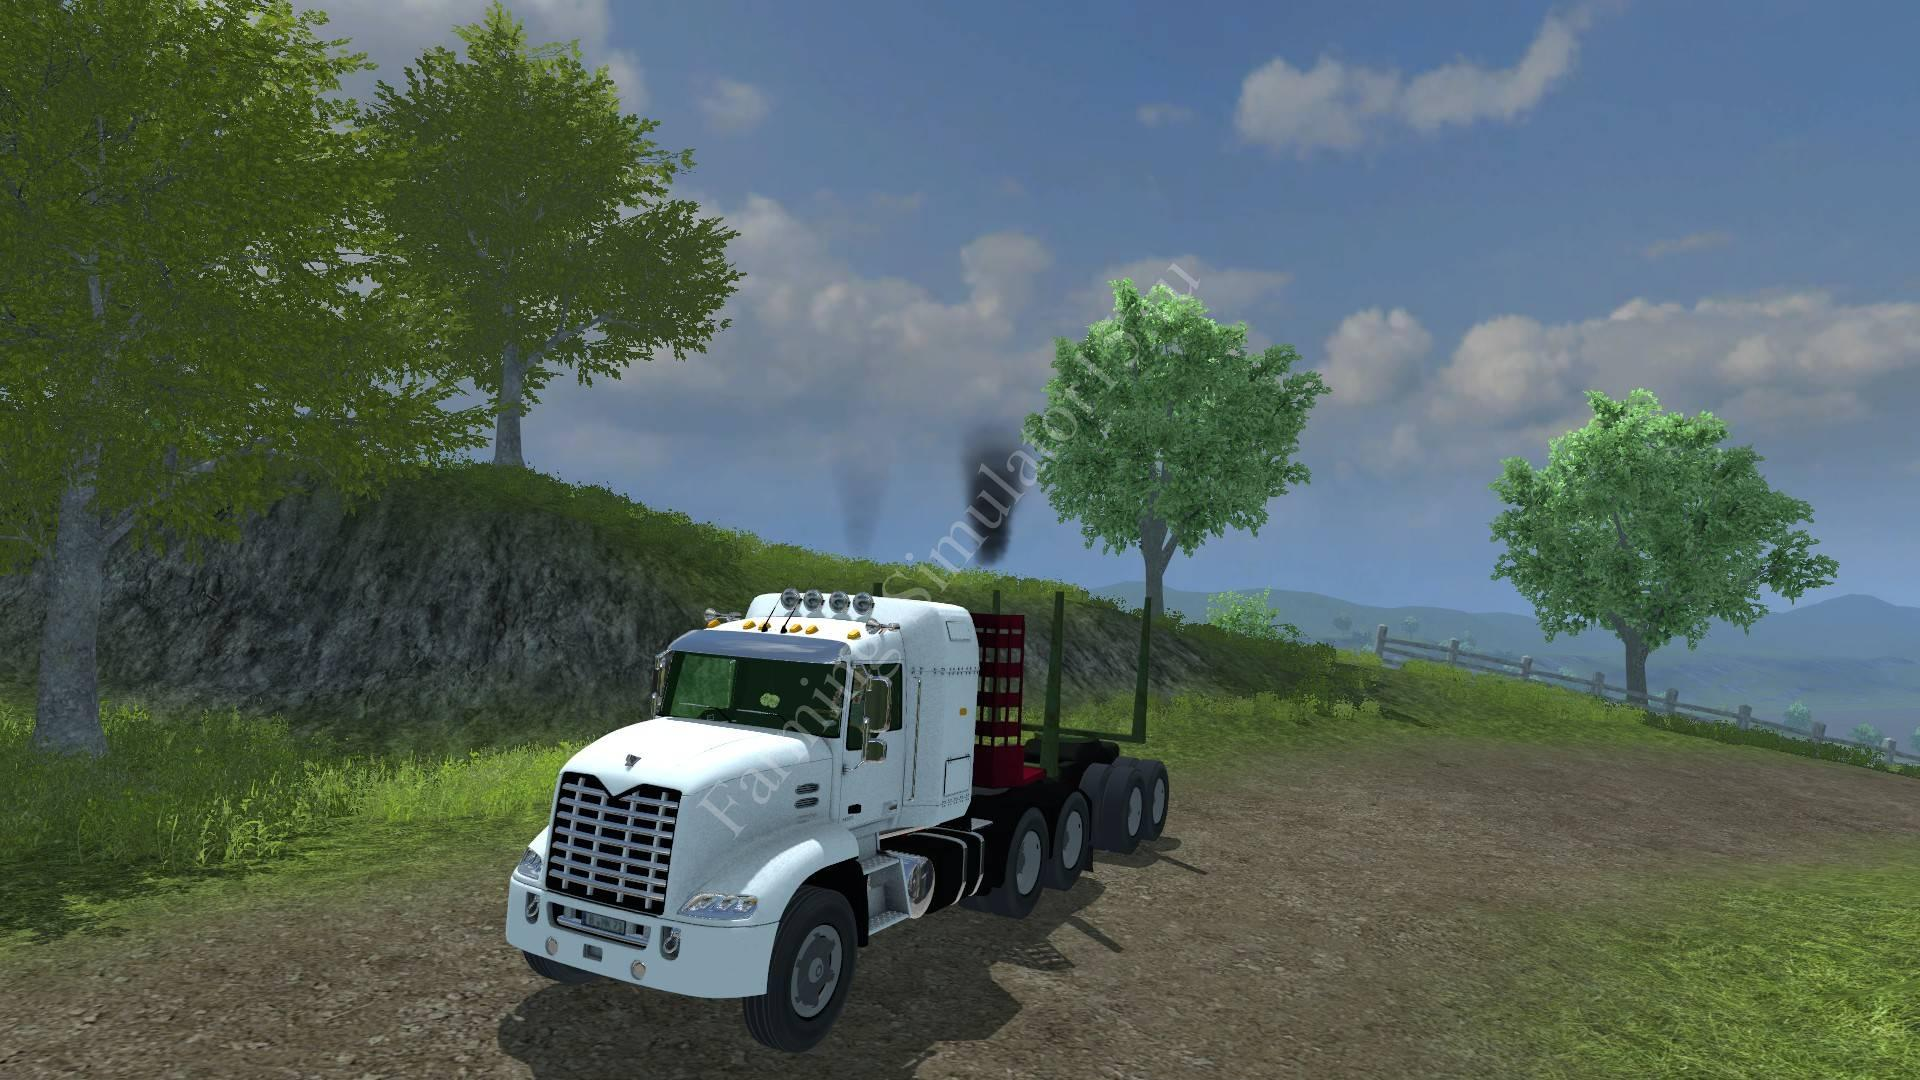 Мод грузовика Mack 803 Forest v 1.0 Farming Simulator 2013, Farming Simulator 13